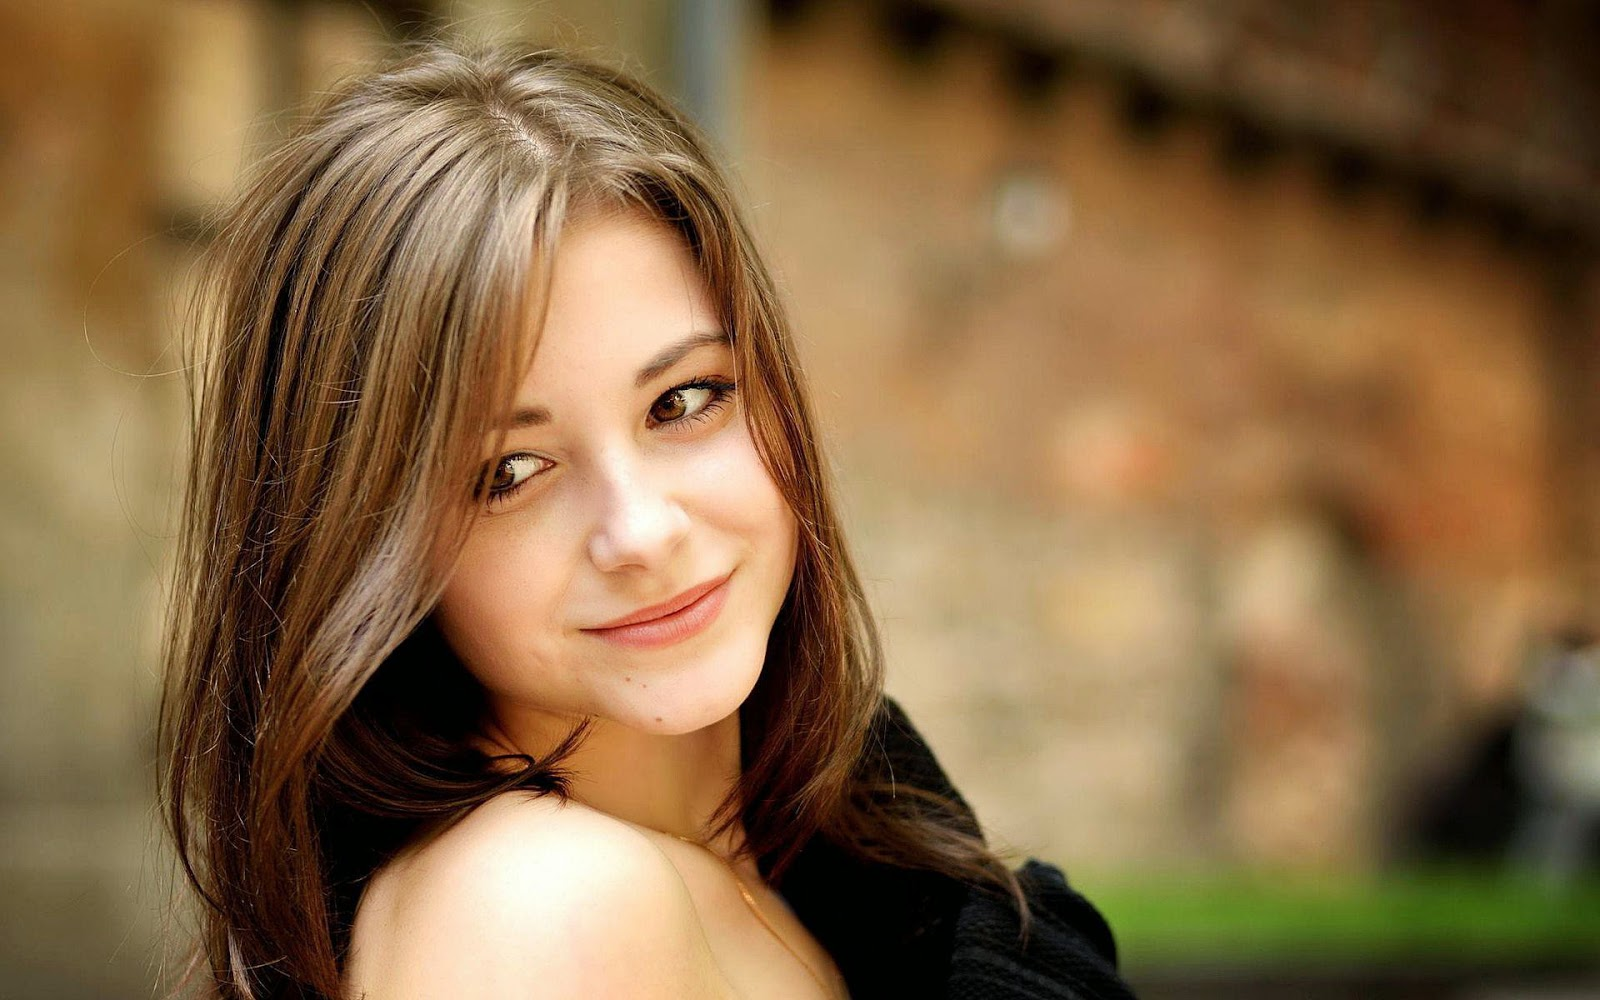 Beautiful Smile Wallpaper: Beautiful Girl Wallpapers HD And Pictures